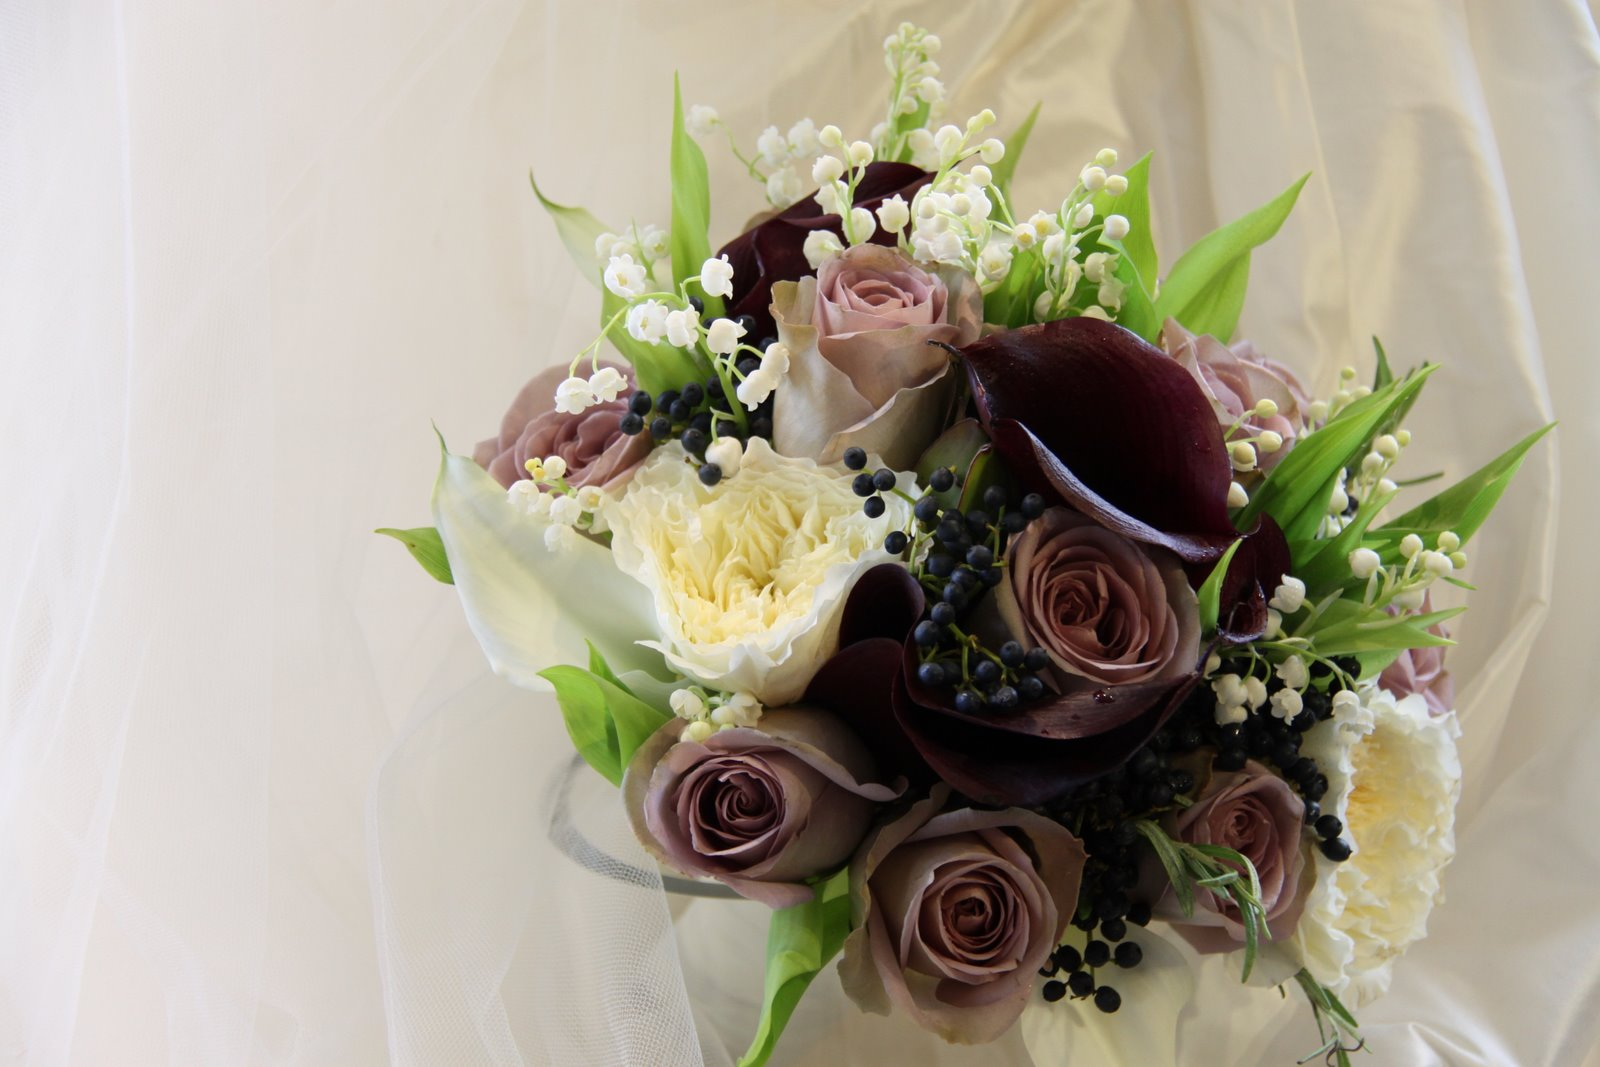 Lily Of The Valley Wedding Bouquet: The Flower Magician: Lily Of The Valley, Rose & Calla Lily